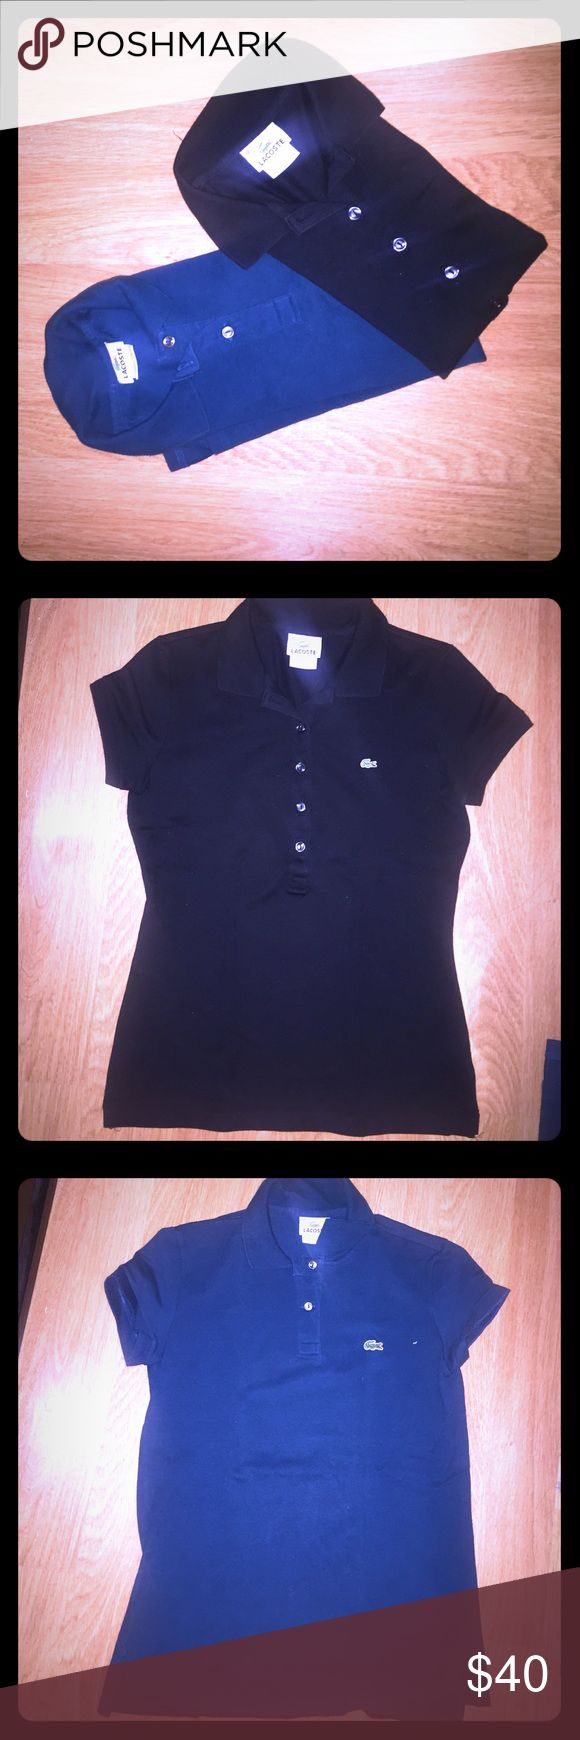 Authentic Lacoste Women's Polo 👚 Shirts Authentic Lacoste Polo Shirts for Women. In pristine condition. Used both only once. It is great to play golf 🏌 in during the summer. Lacoste Tops